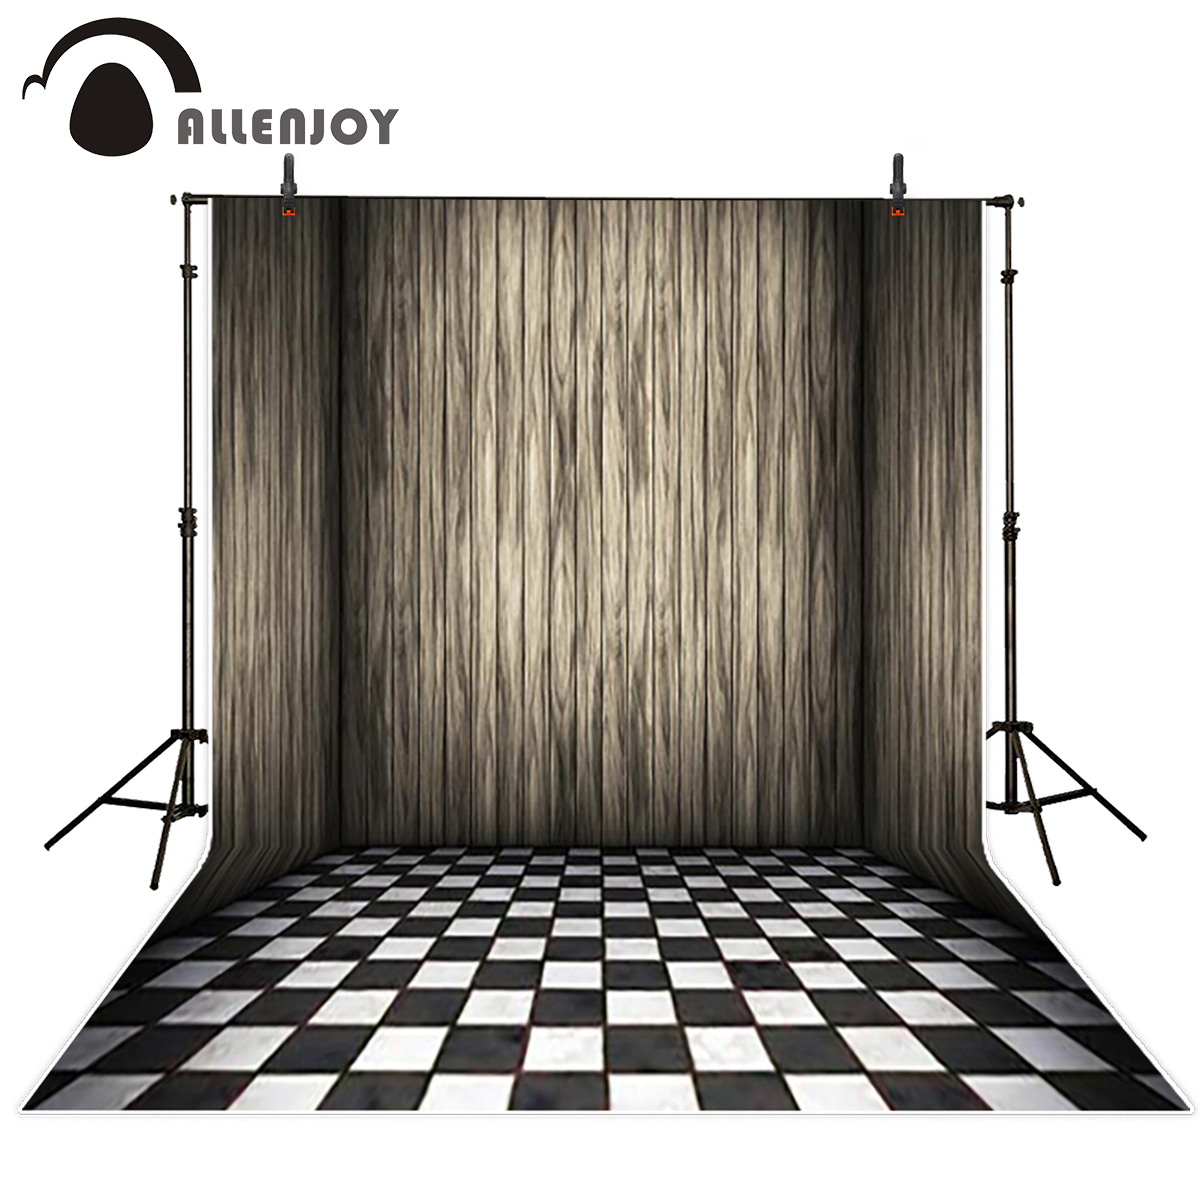 Allenjoy wood wall 3D lattice floor photography backdrop board newborn baby shower custom portrait background photo studio props love photography backdrop scenery custom photo portrait studios background valentine s day backdrop f 2908